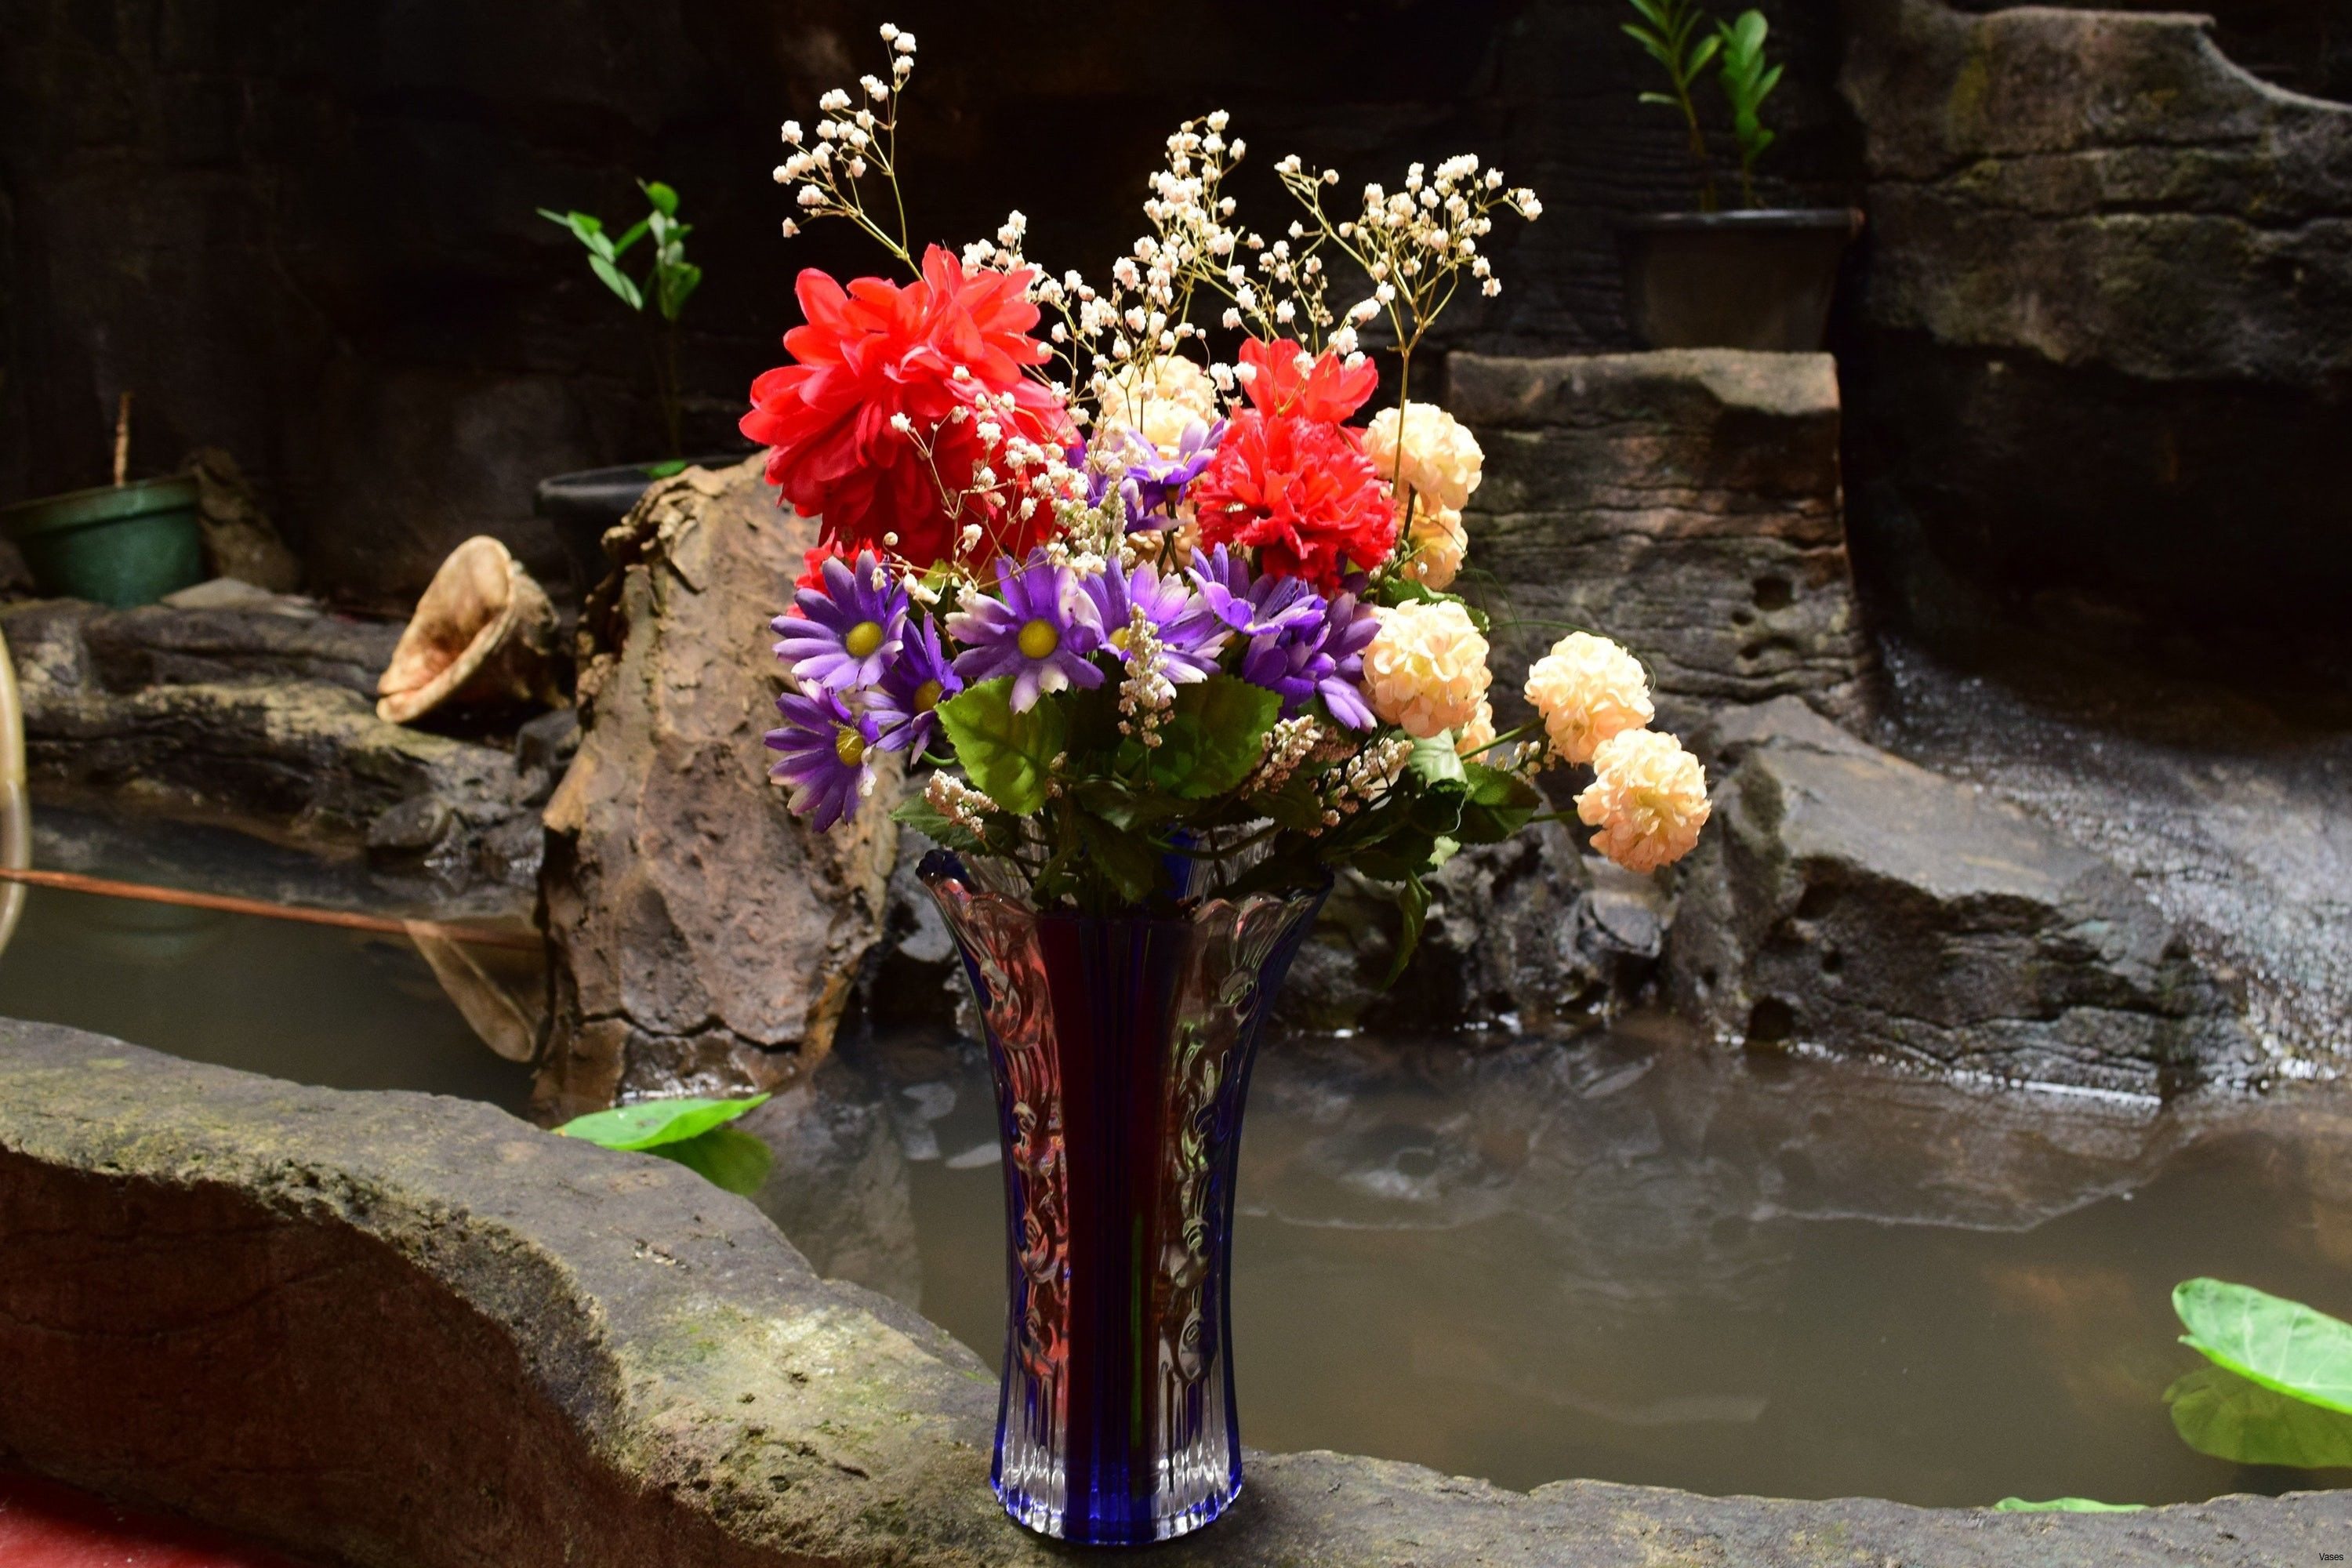 small artificial flowers in vase of flower arrangement in vase lovely vase table still flower beautiful in flower arrangement in vase lovely vase table still flower beautiful life nice hd image best 529